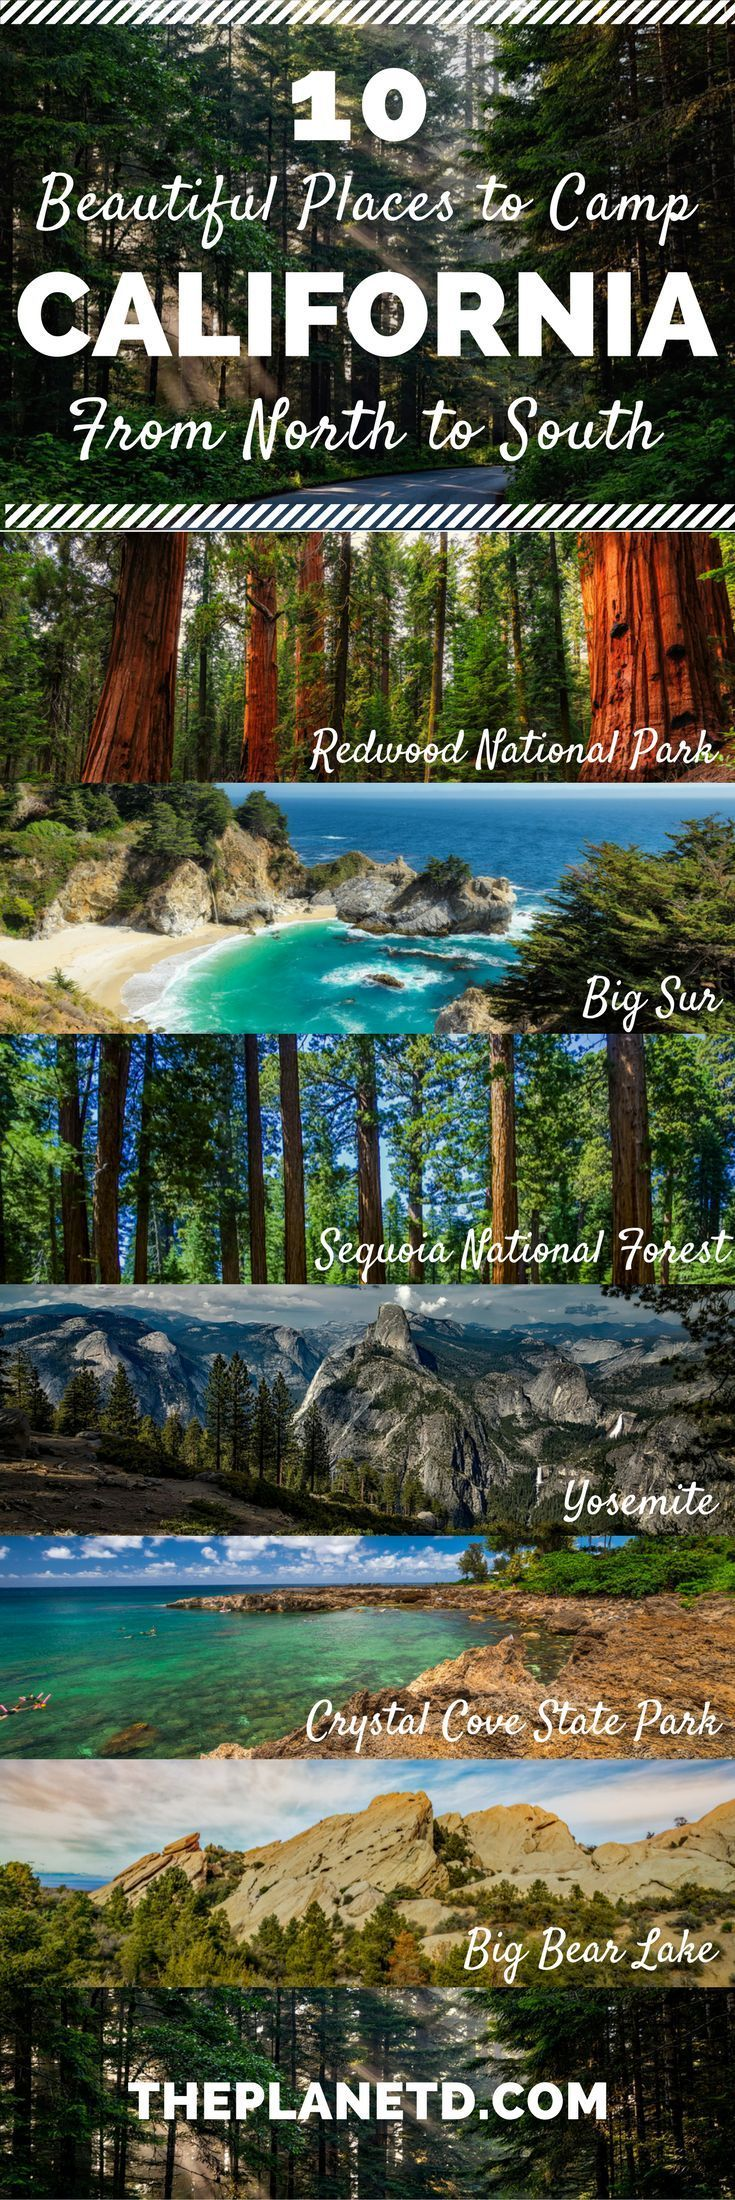 Ten of the most beautiful camping spots in California. From Redwood National Park in the north, to Big Bear Lake in the south, and Big Sur and Yosemite in-between, these camping sites make up the ultimate California road trip itinerary. Travel in the USA.